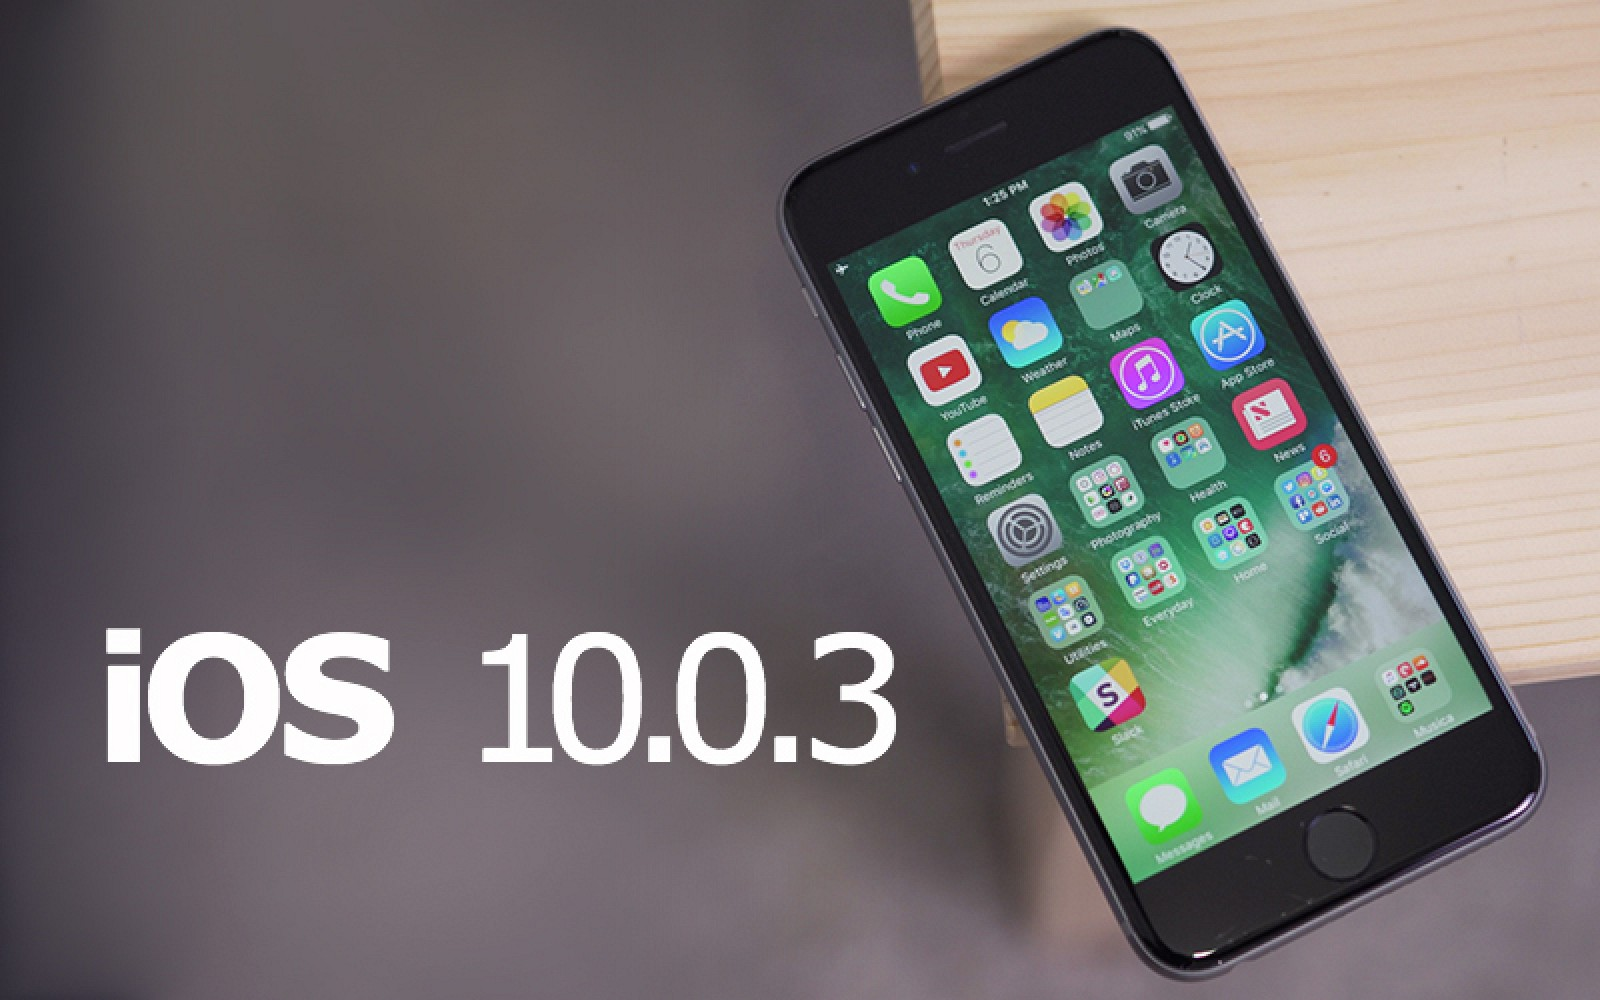 apple releases ios 10 0 3 for iphone 7 with cellular connectivity bug fix macrumors. Black Bedroom Furniture Sets. Home Design Ideas